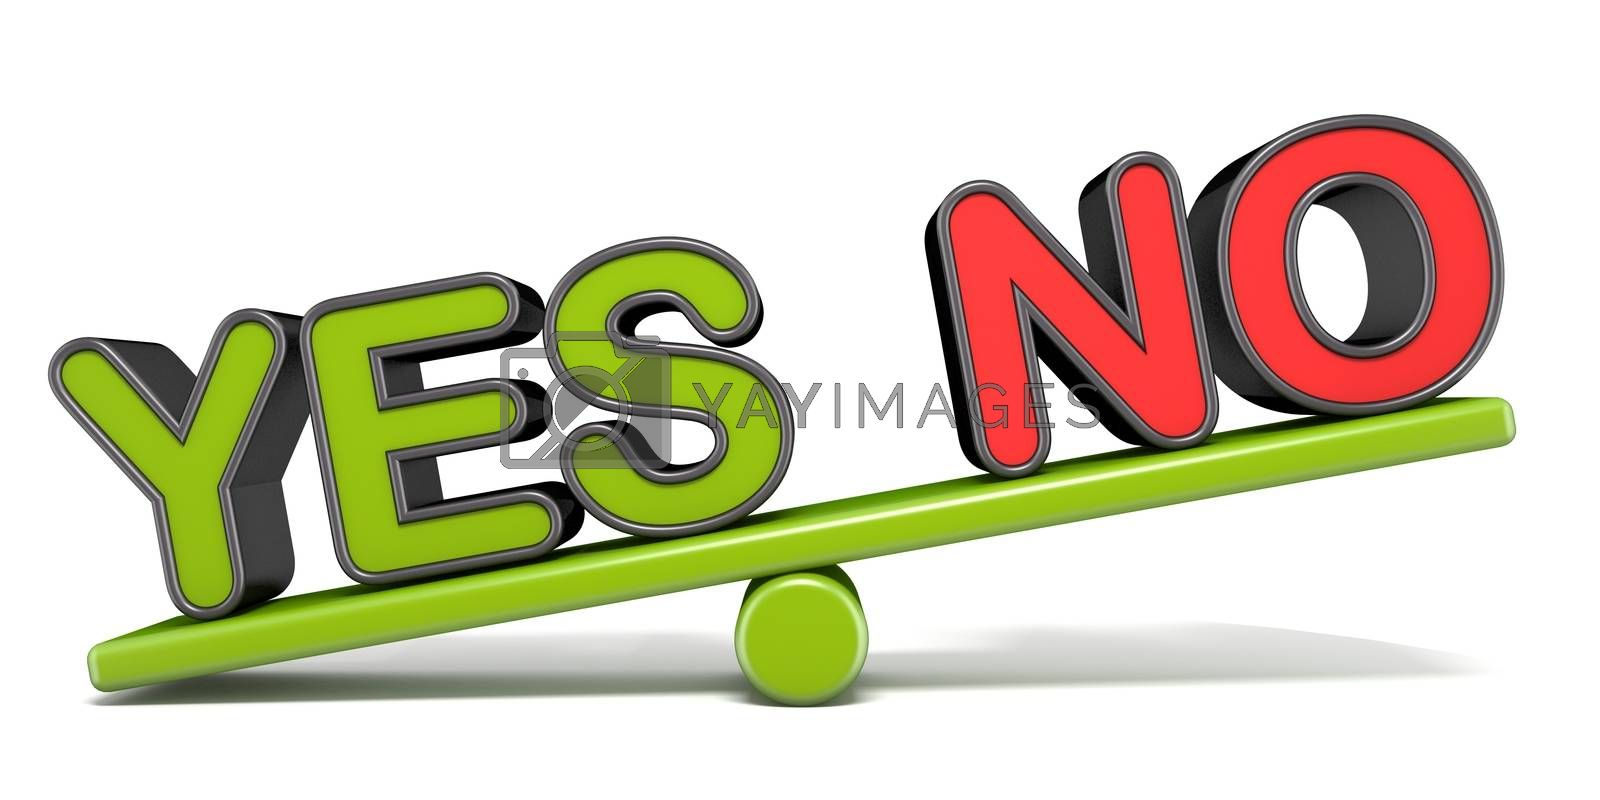 YES or NO teeter overbalance concept 3D by djmilic